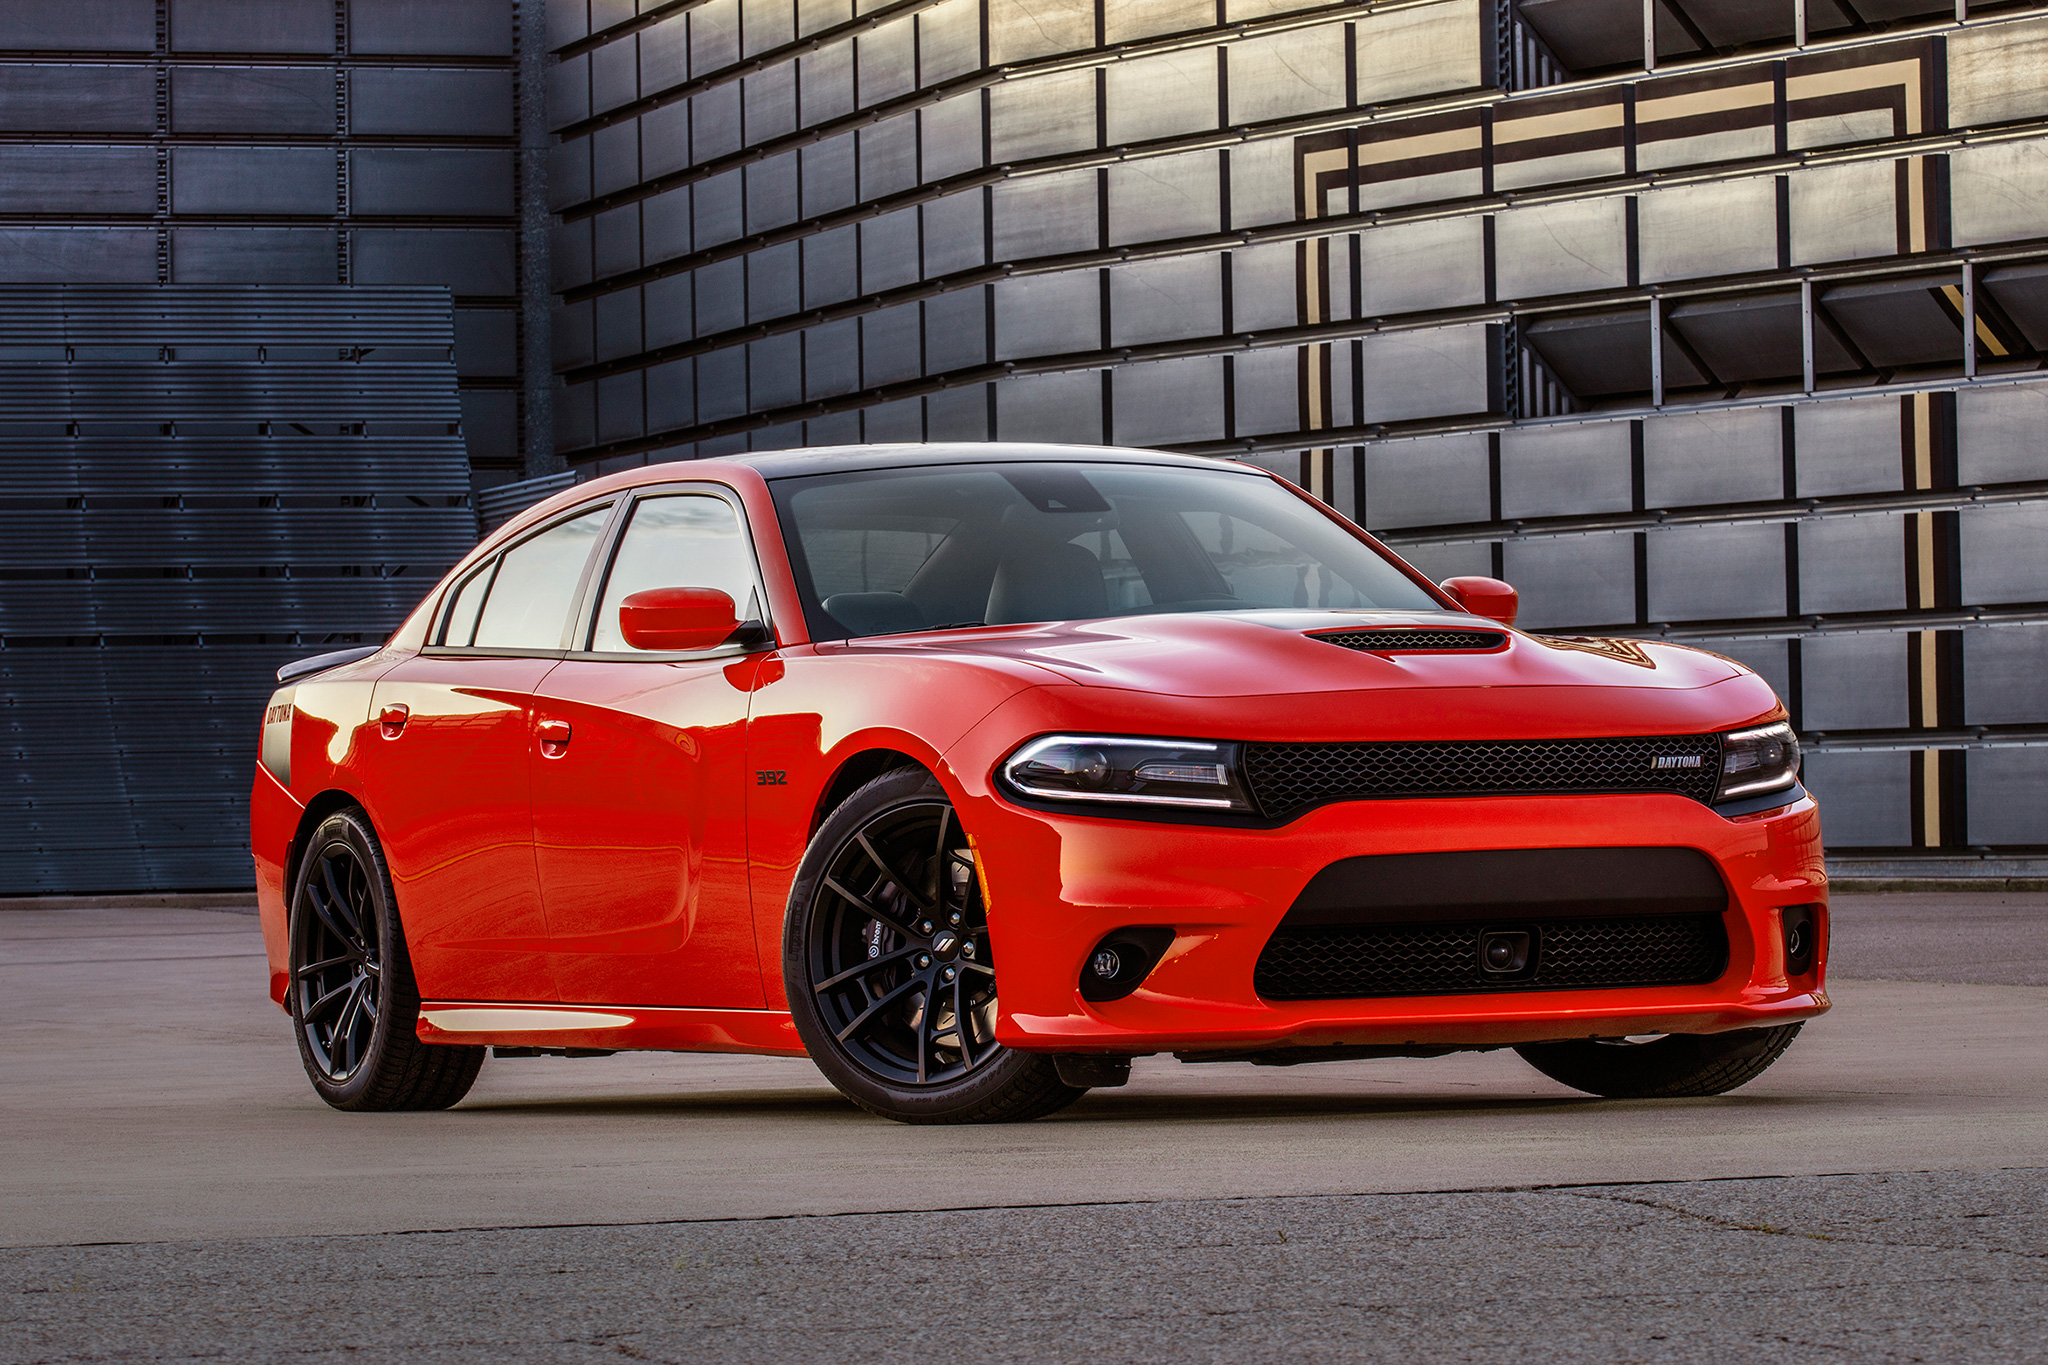 2016 dodge charger photos autos post for Coupe definition